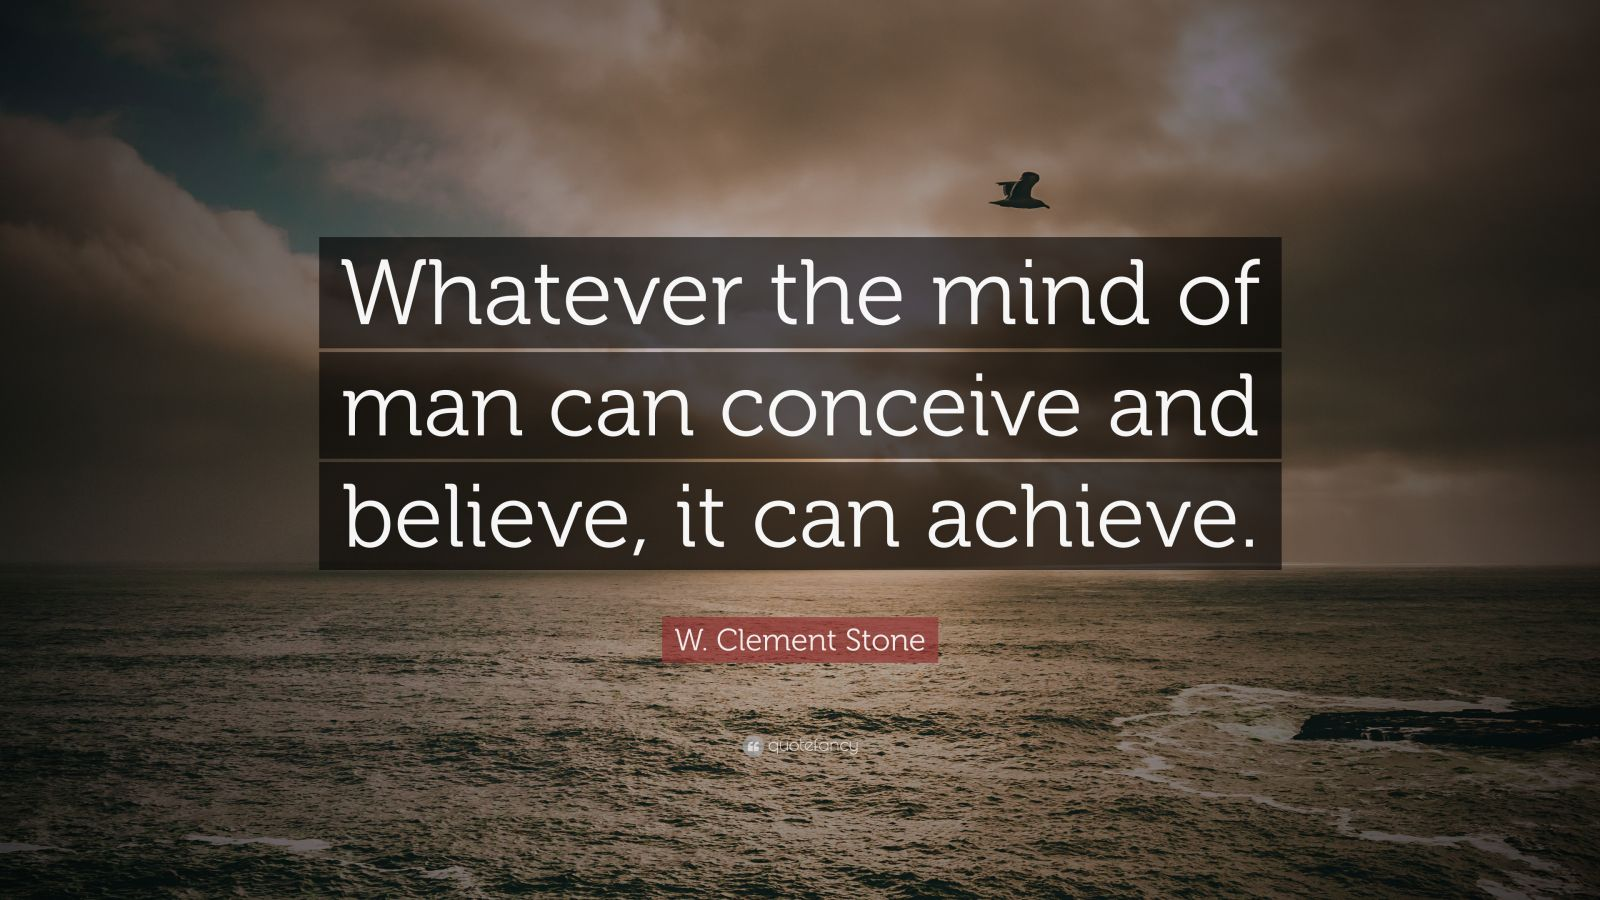 Steve Jobs Wallpaper Quotes W Clement Stone Quote Whatever The Mind Of Man Can